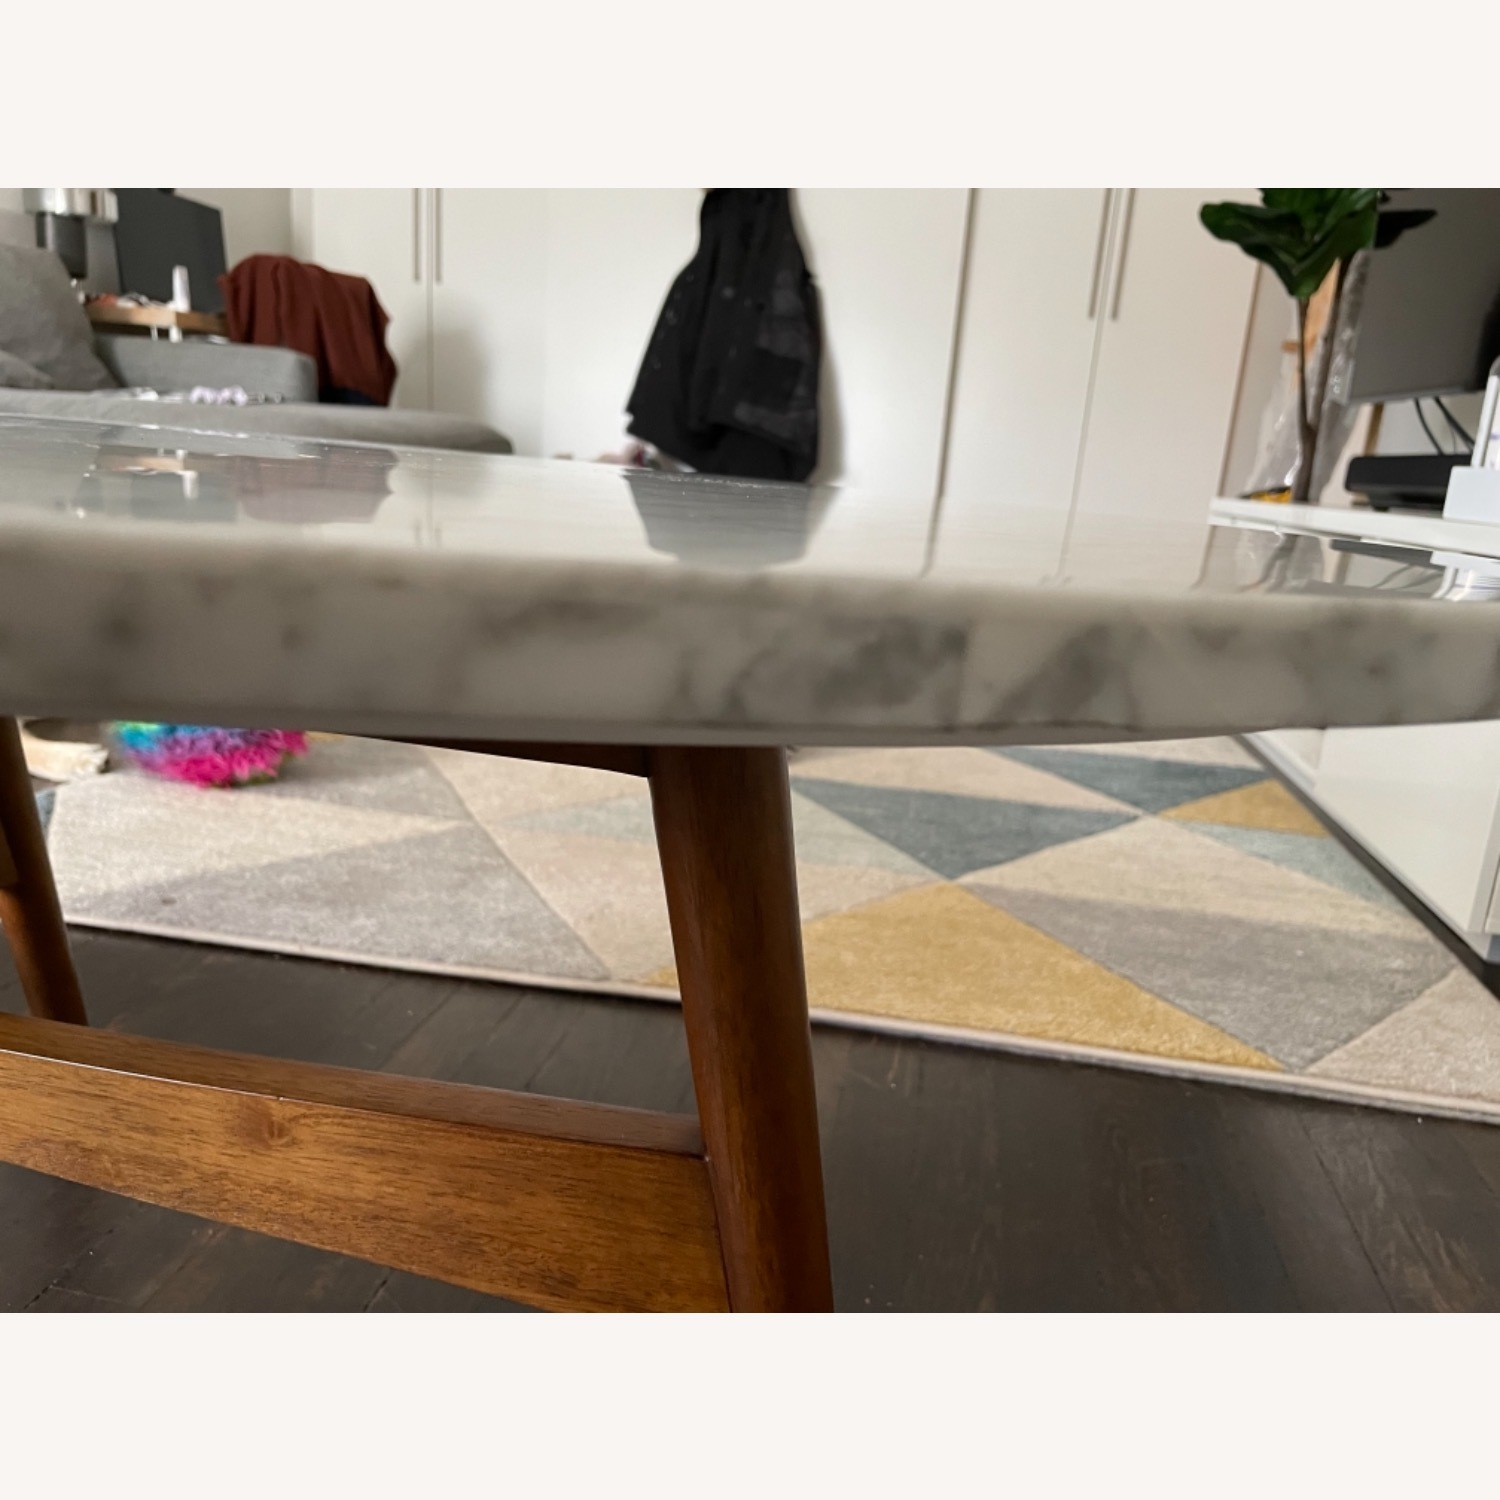 West Elm Reeve Mid-Century Oval Coffee Table - Marble Top - image-7